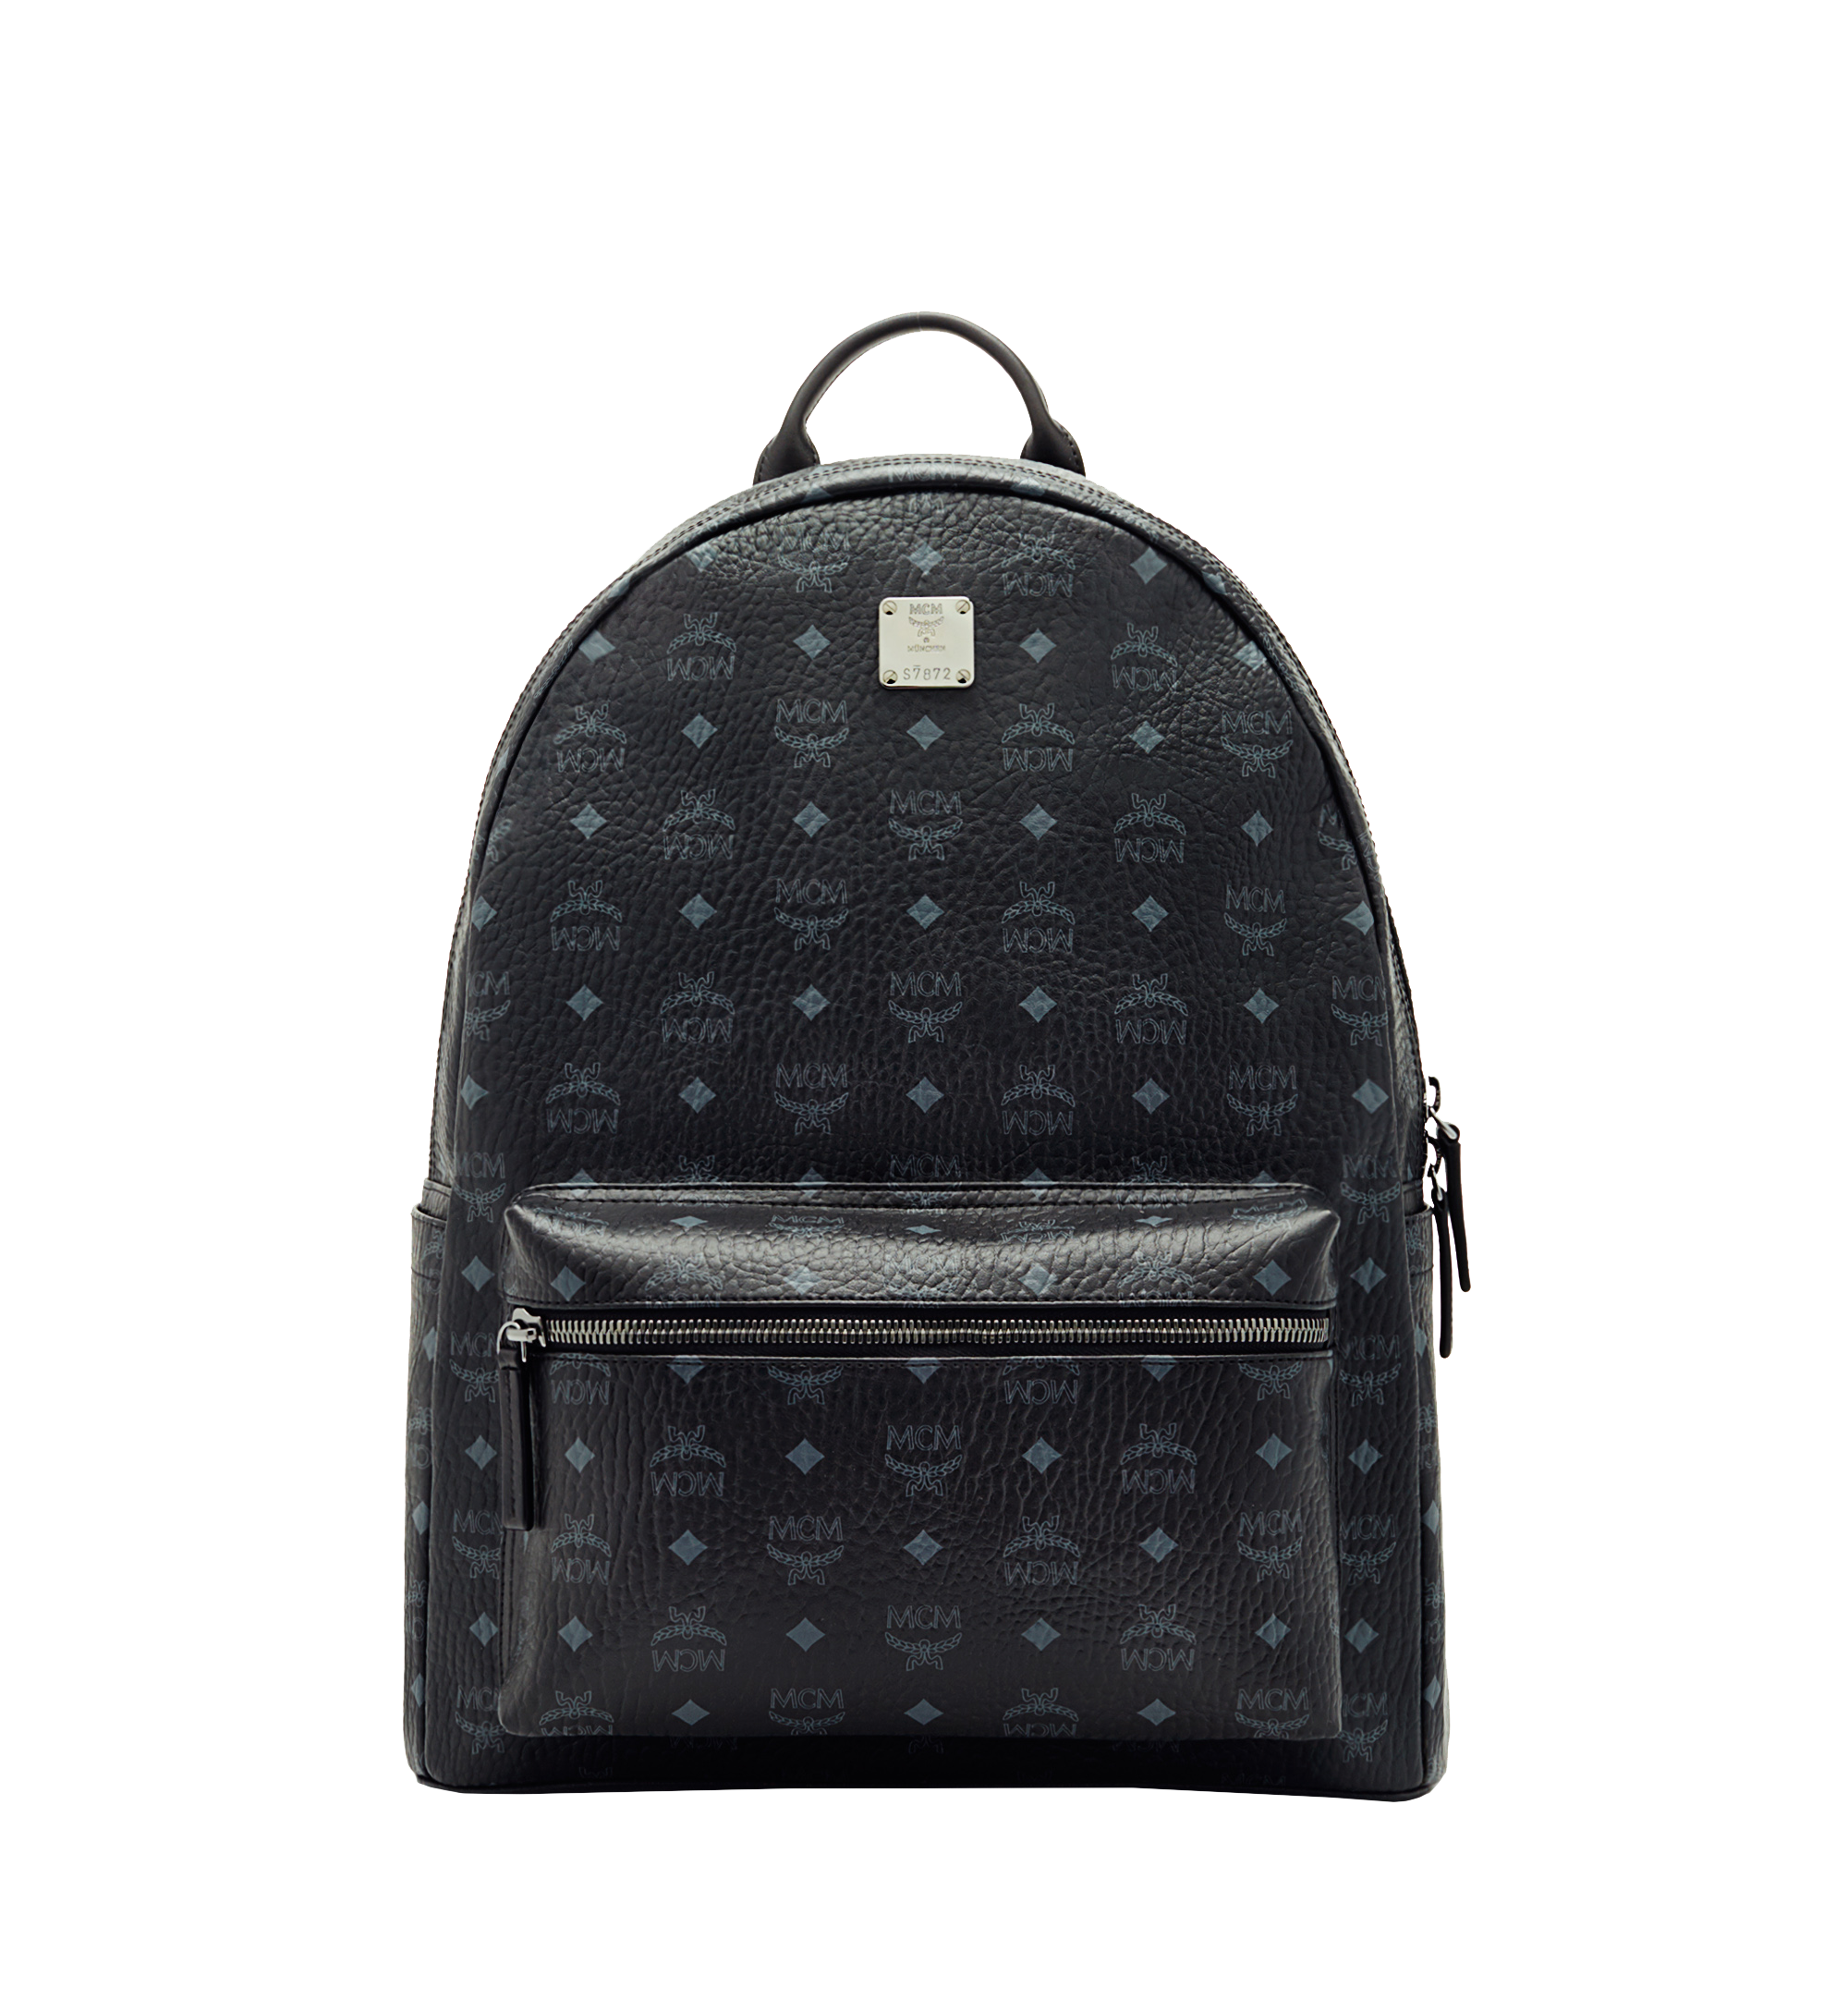 47 cm   18.5 in Stark Classic Backpack in Visetos Black  7a7bc9f2a52f0